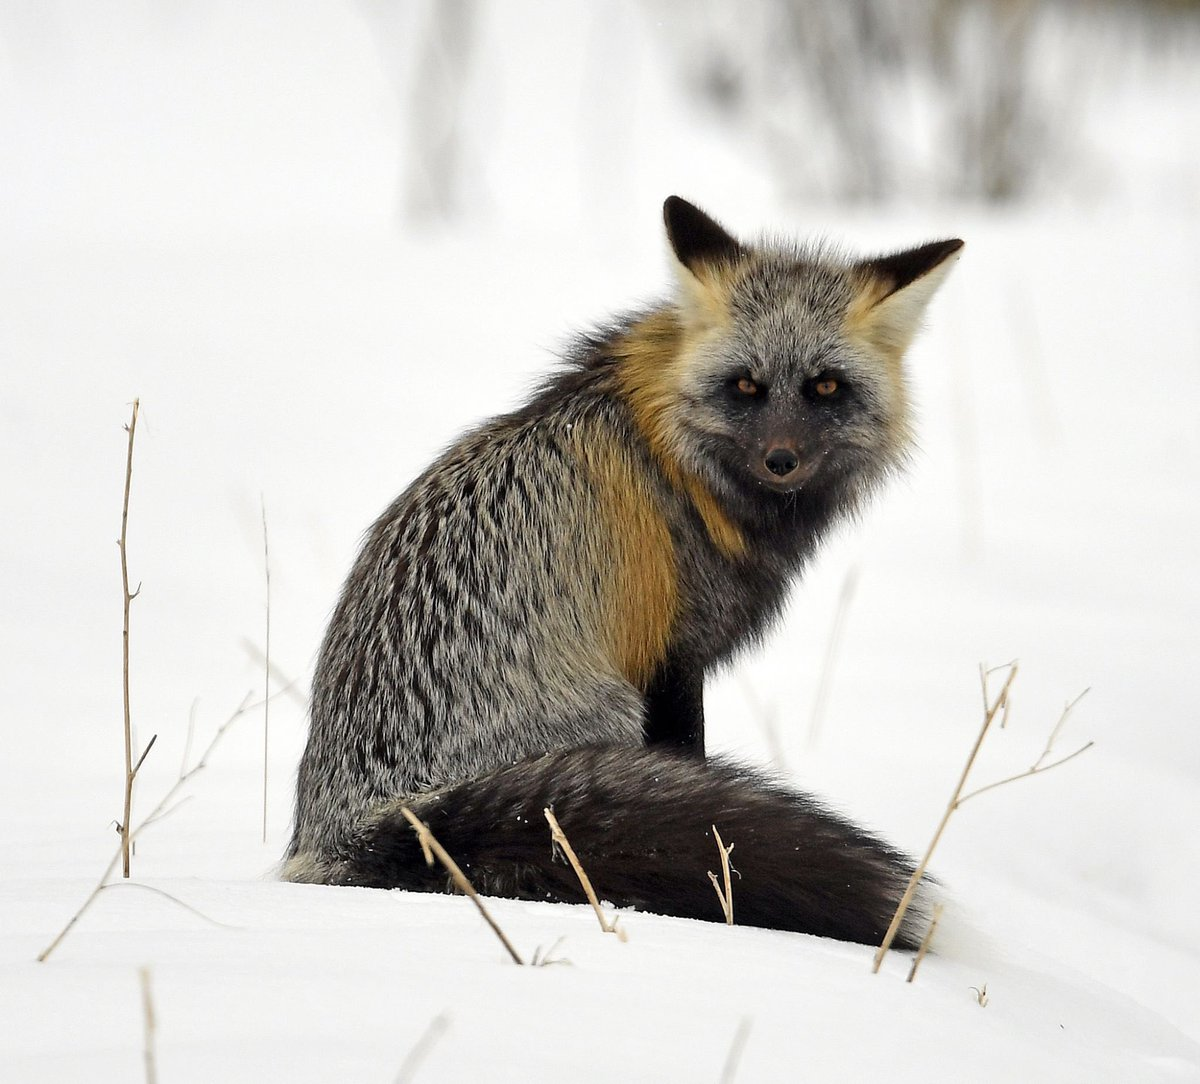 Jackson Hole nature painter Sonia Reid took this amazing photo of a mountain fox in Grand Teton National Park this week. Check out Sonias paintings at soniareid.com